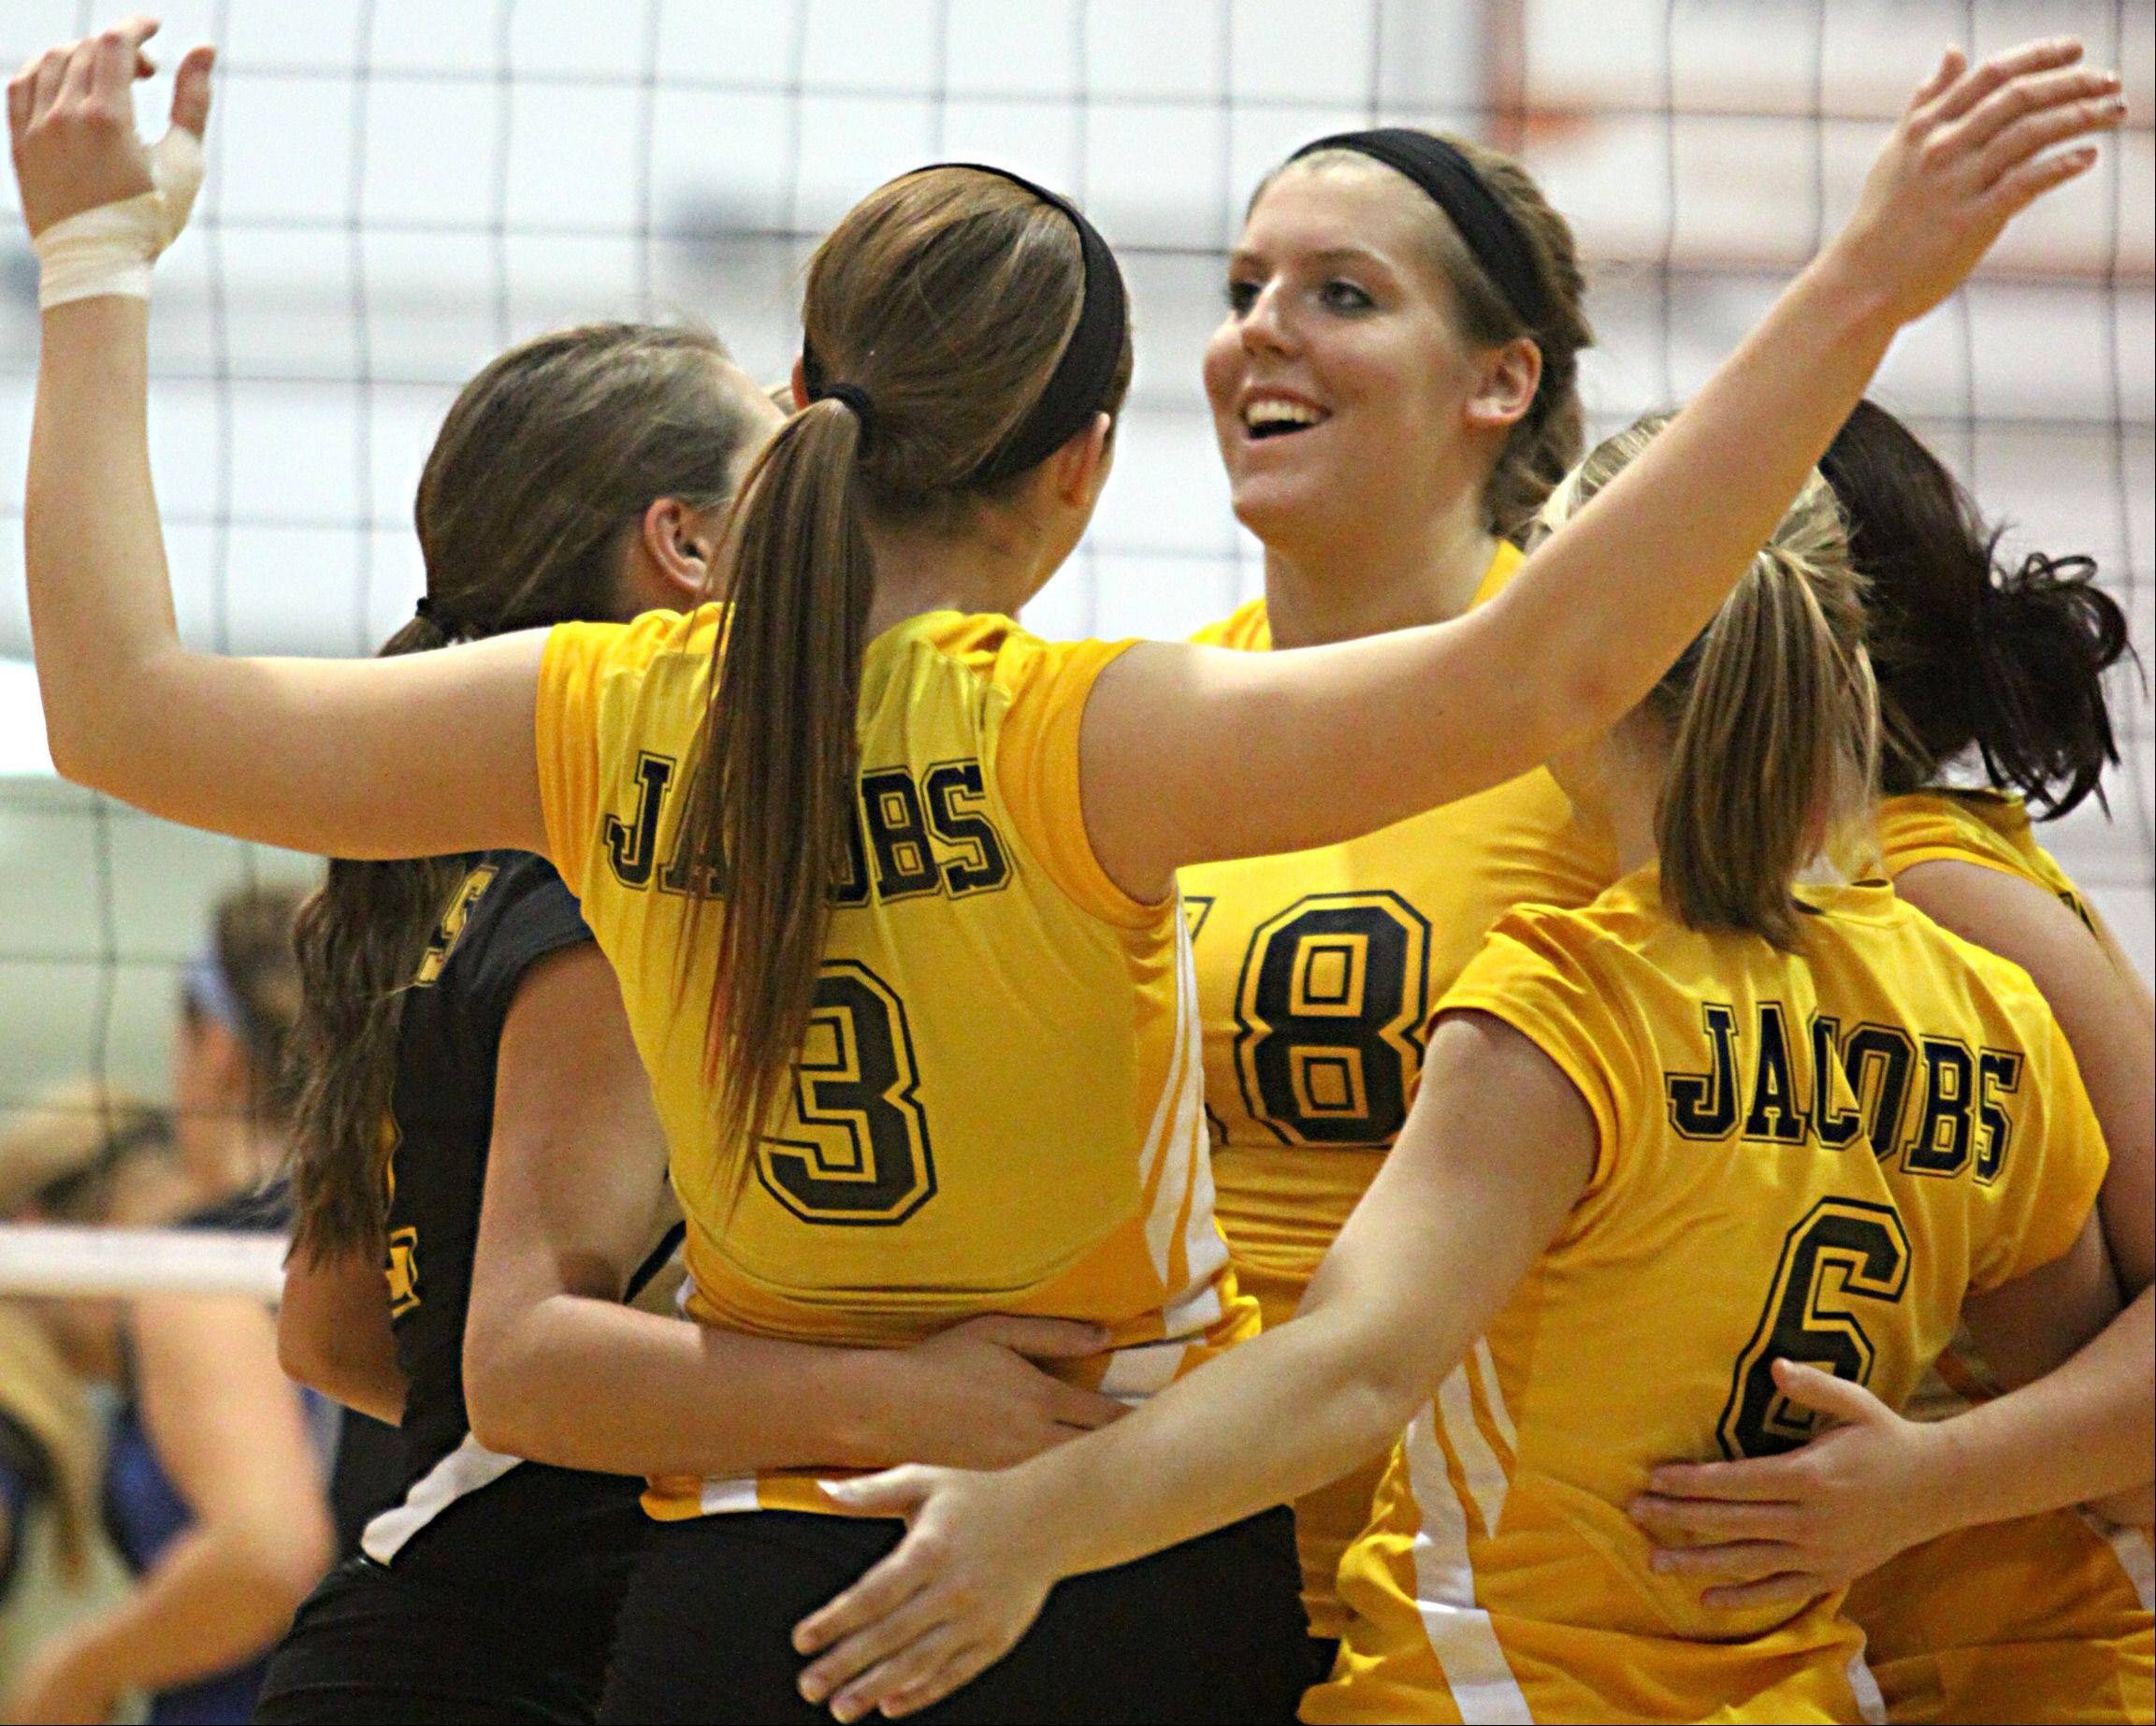 Nikki Madoch, center, and other Jacobs players celebrate their victory over Dundee-Crown Thursday.